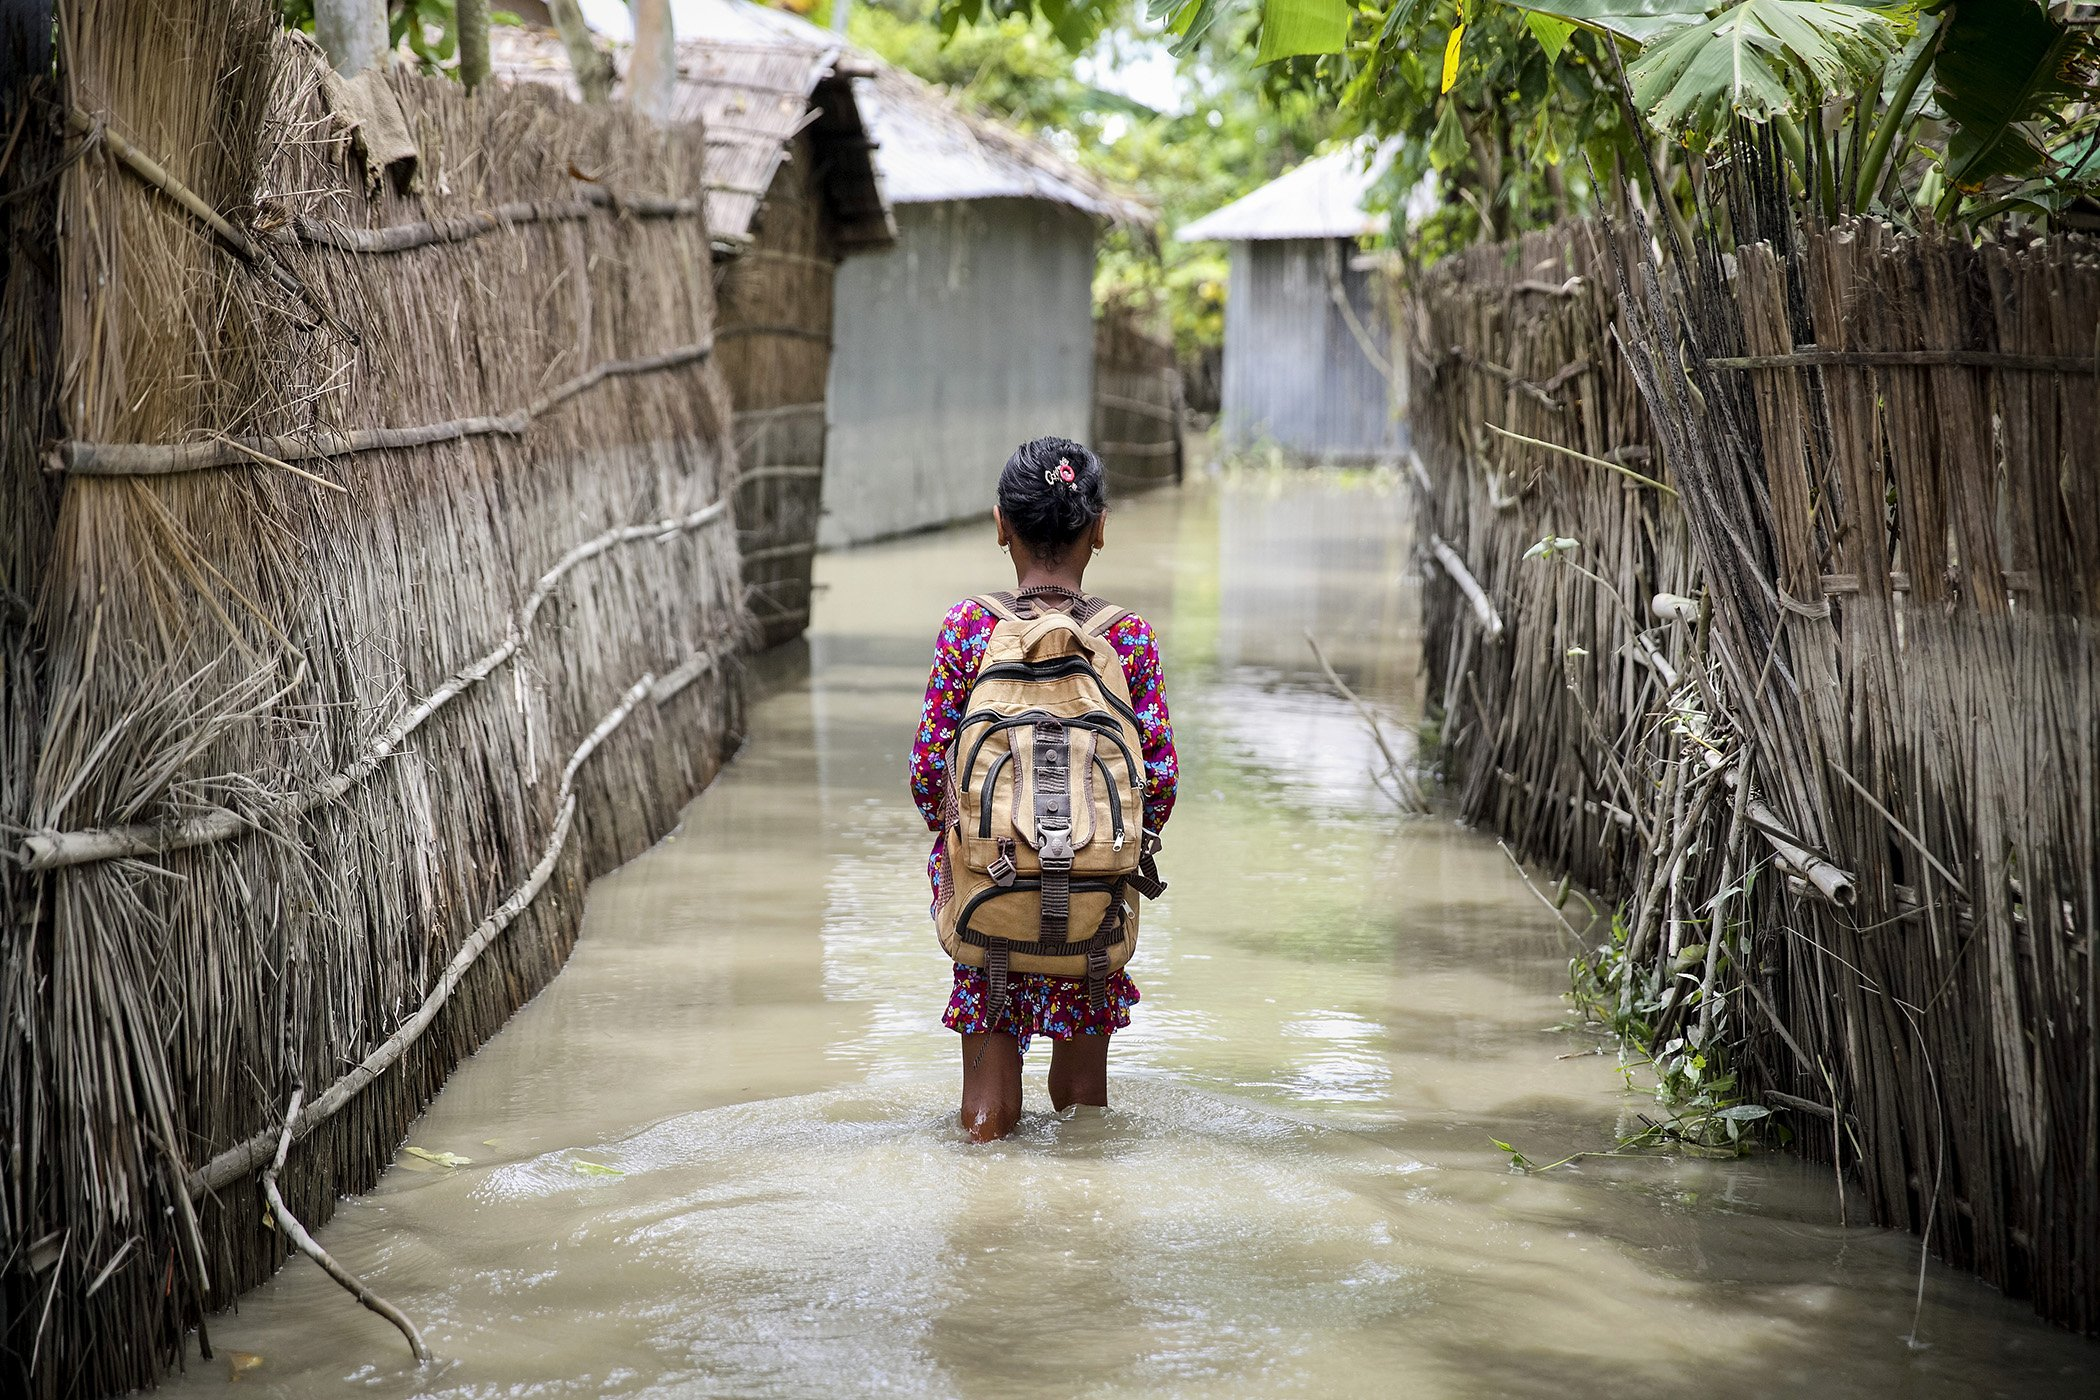 Climate Change Is a Threat to the Future of Children Worldwide: Report